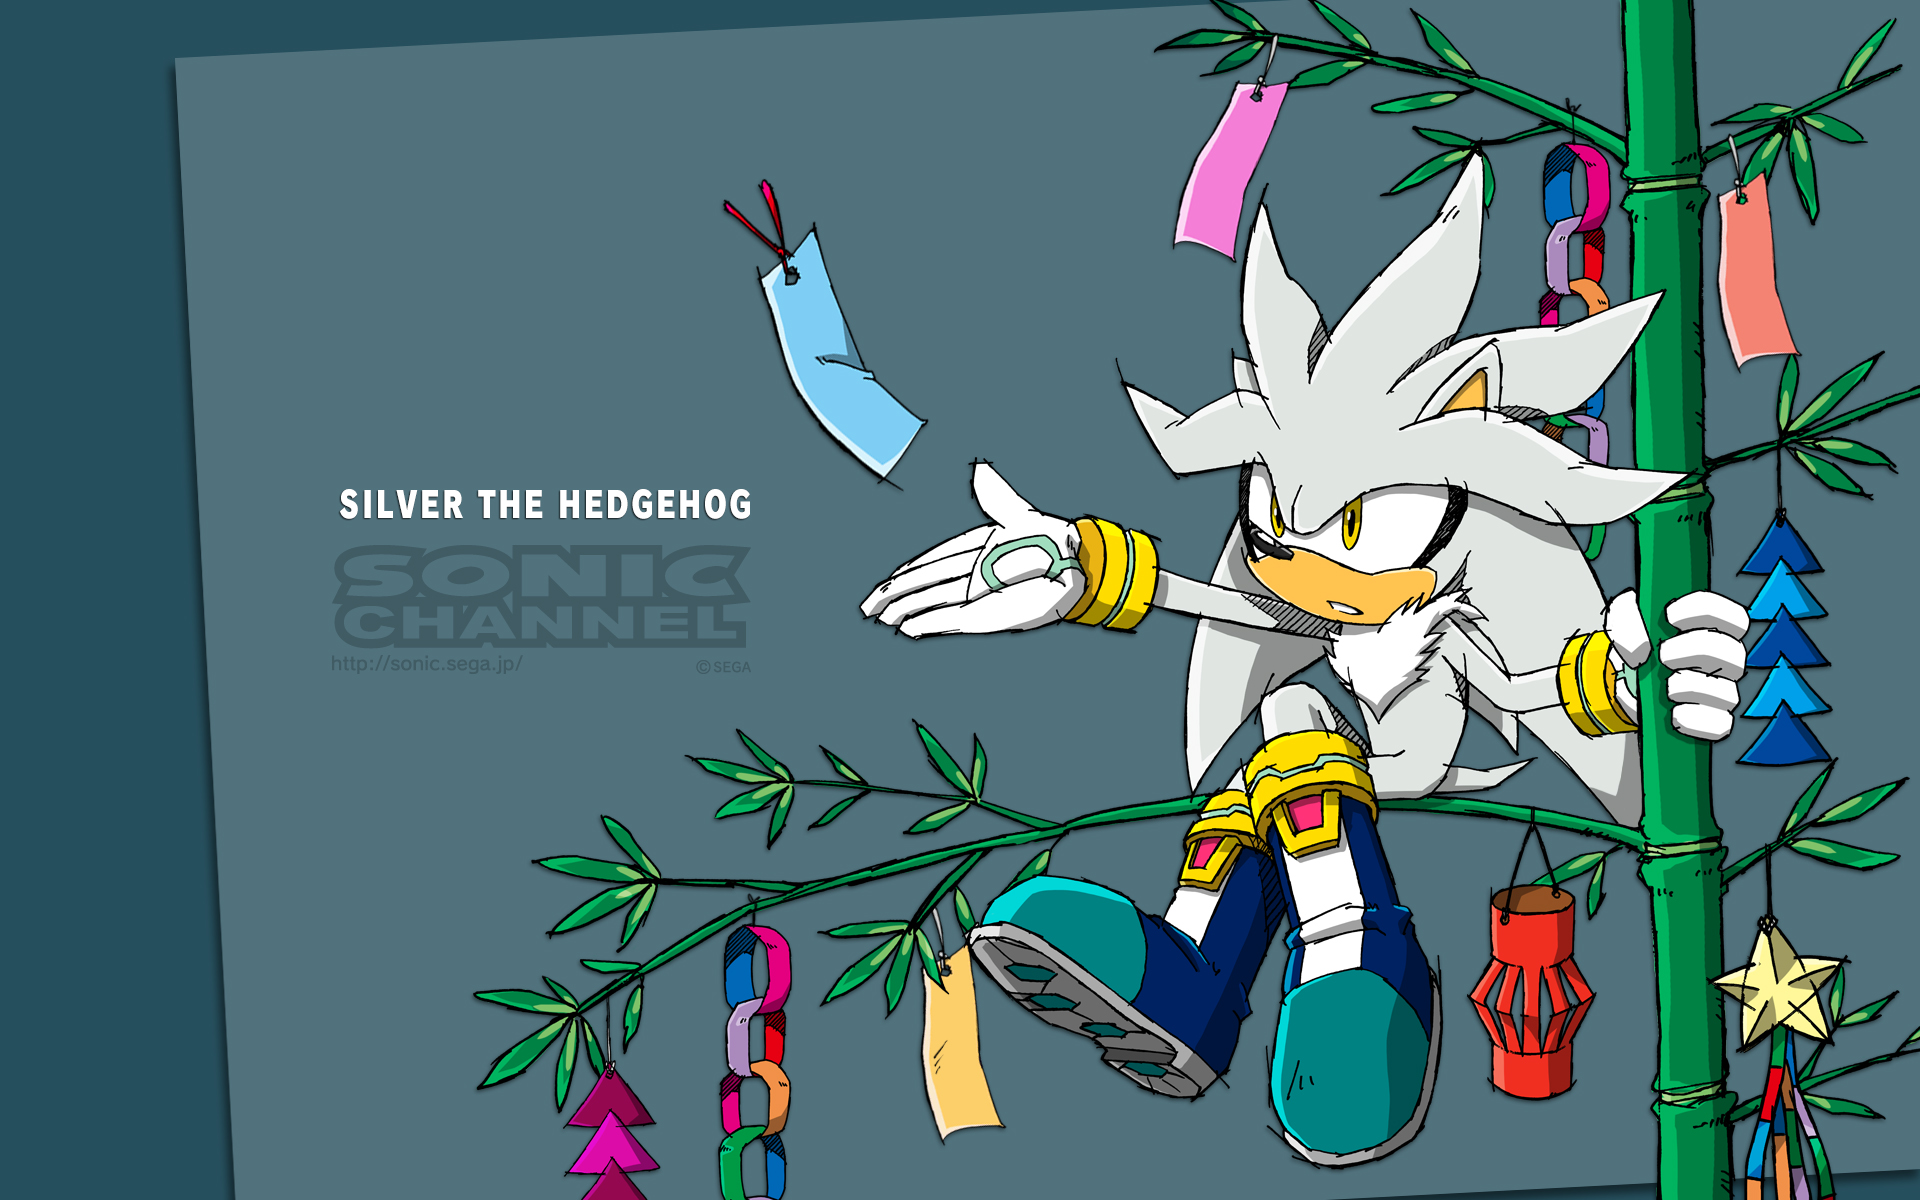 2013 07 Silver The Hedgehog Sonic Channel Gallery